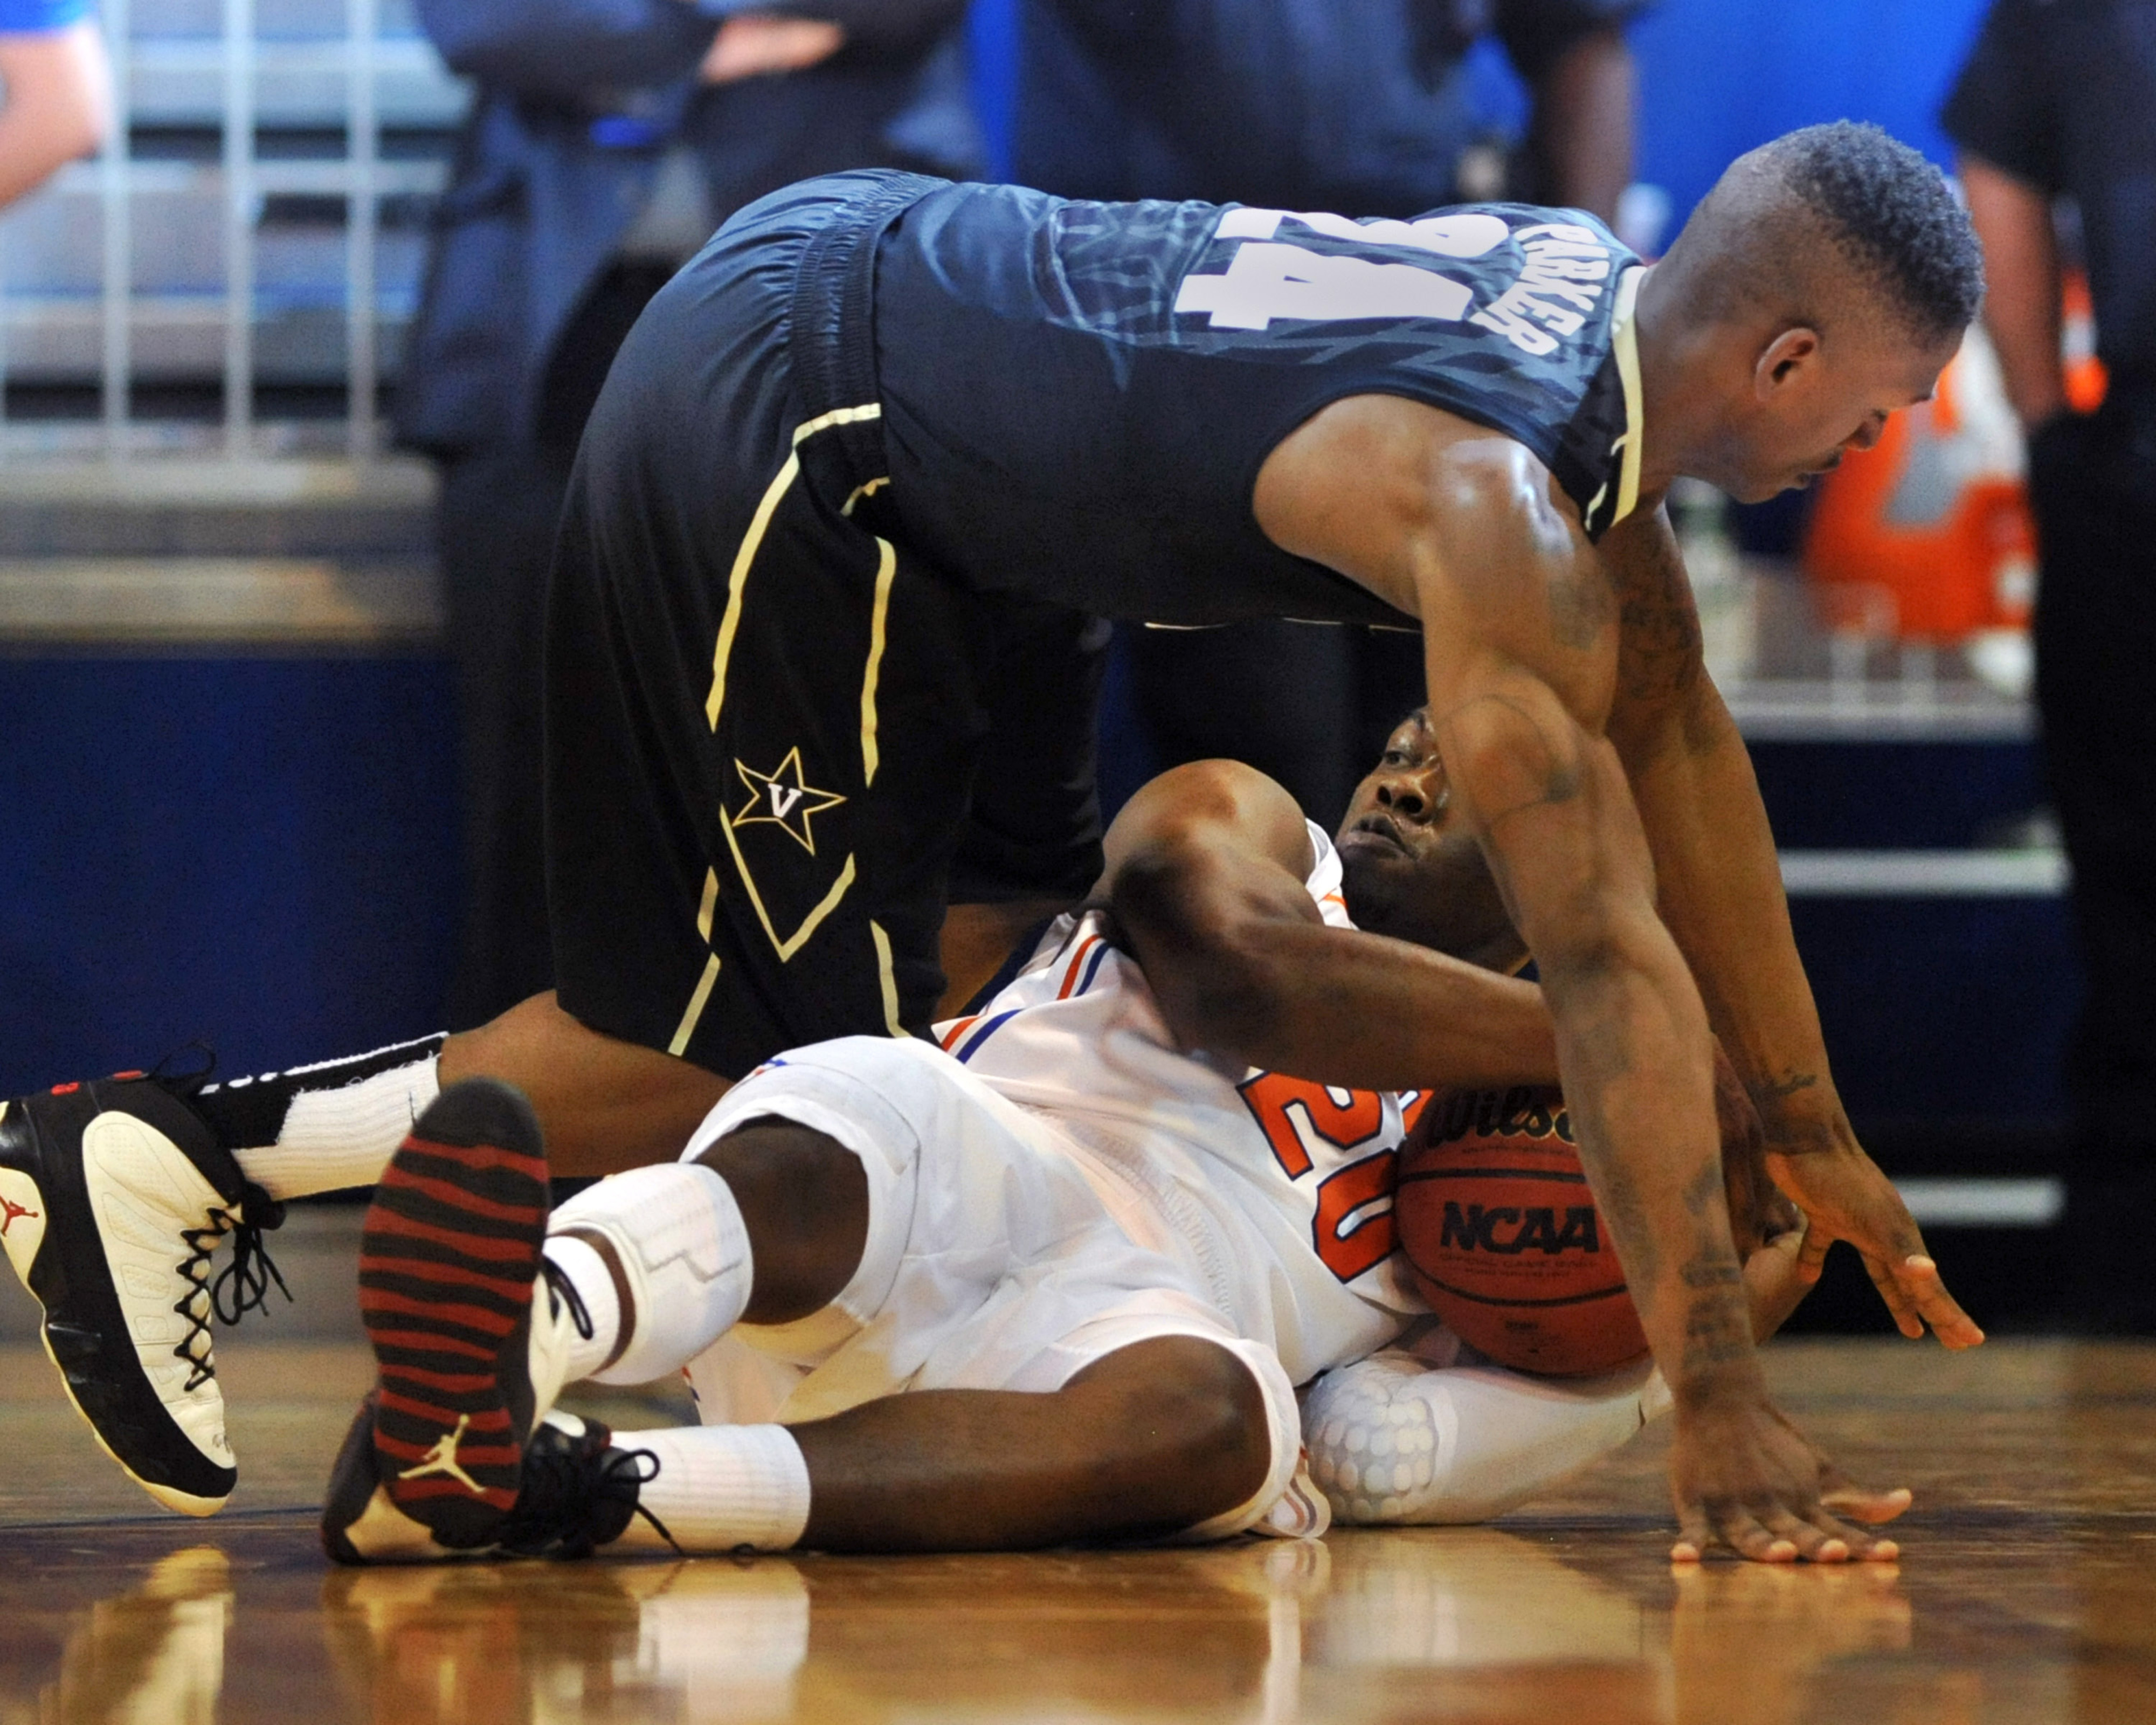 Kevin Stallings had to speak to DJP about planking mid-game.